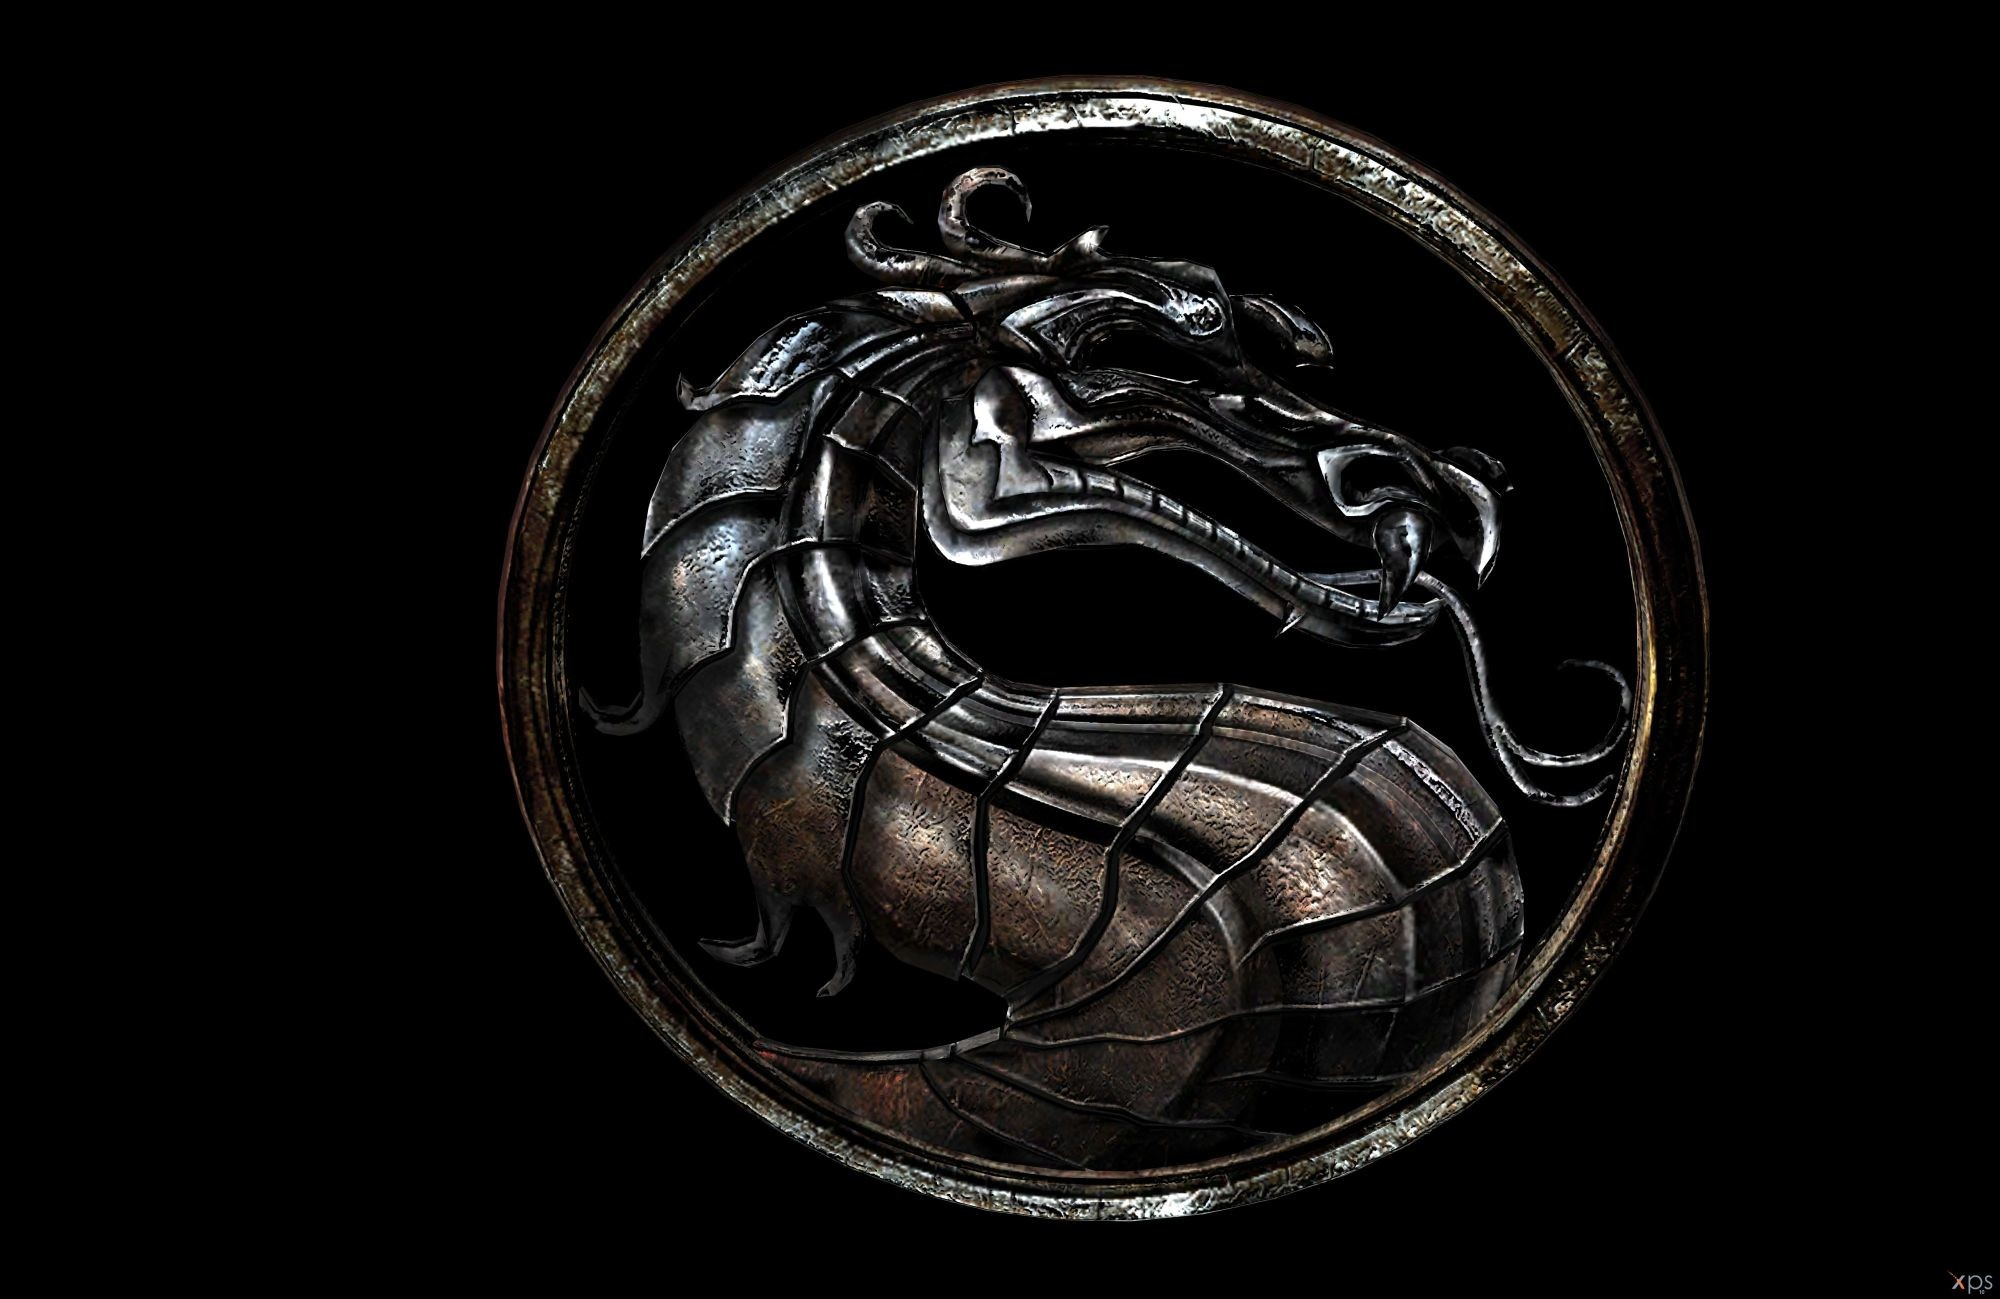 2000x1299 Mortal kombat x logo wallpaper - photo#5